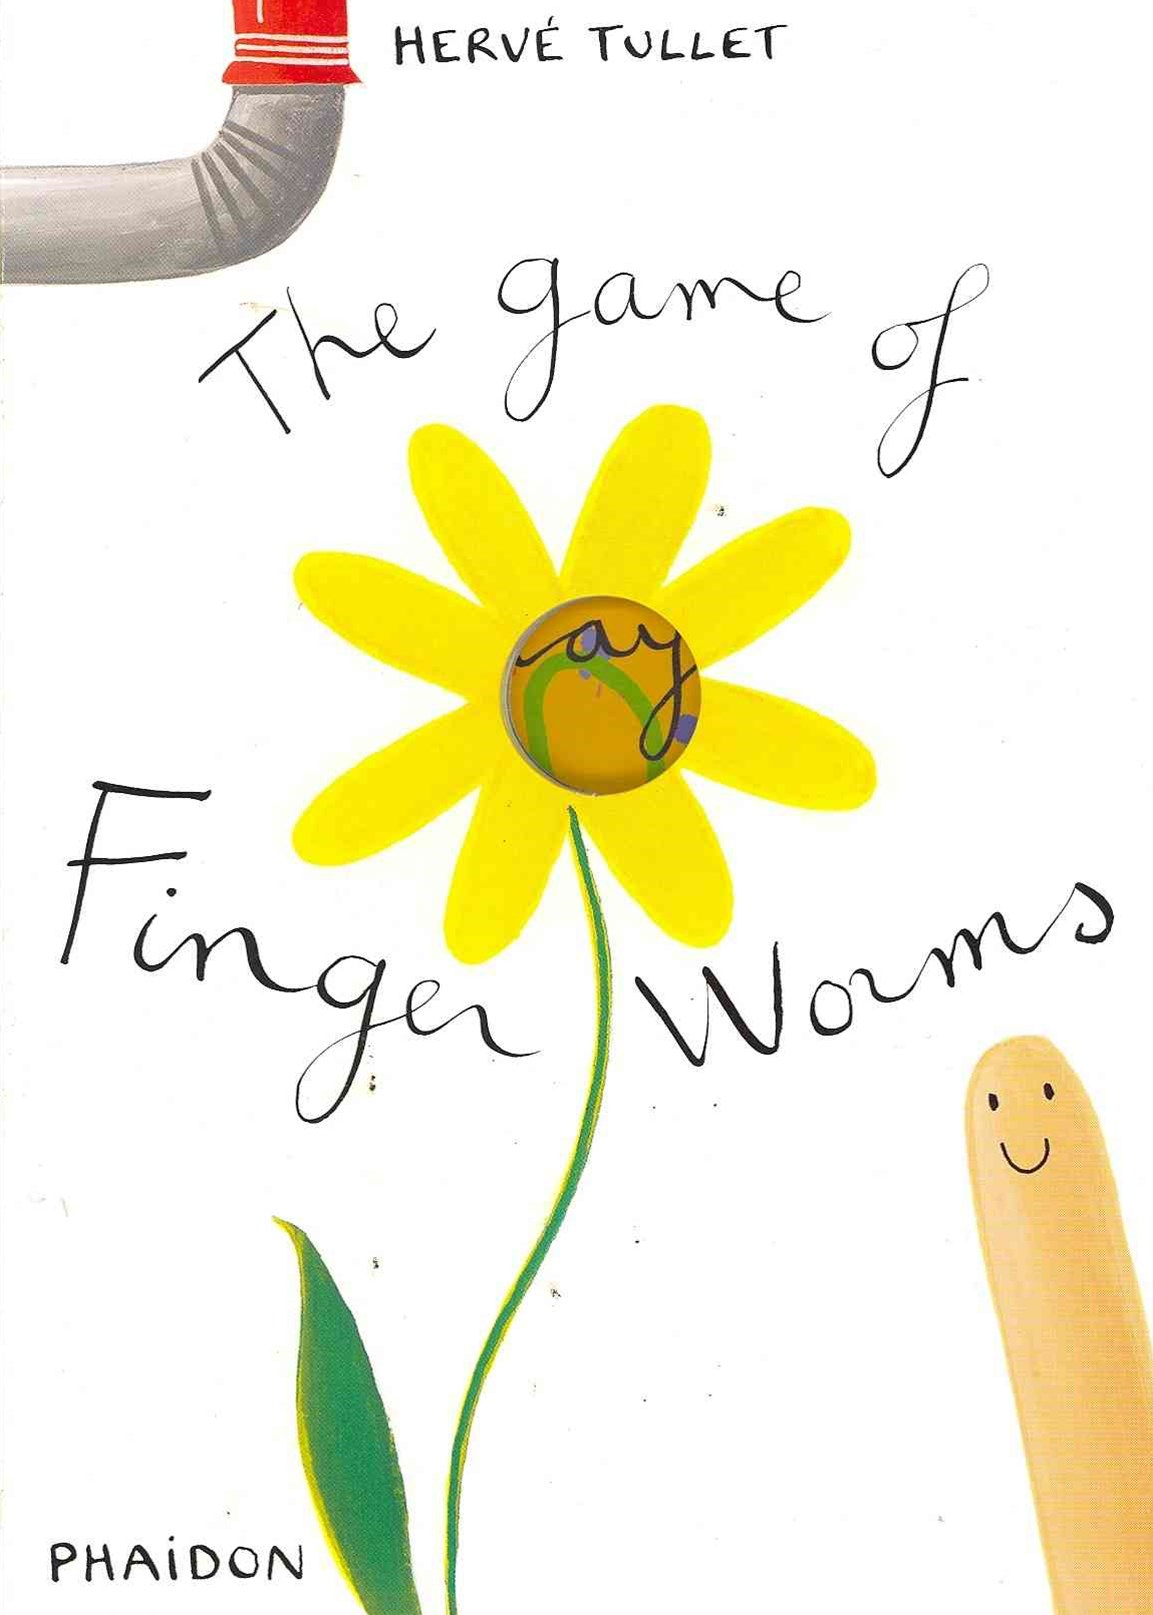 The Game of Finger Worms